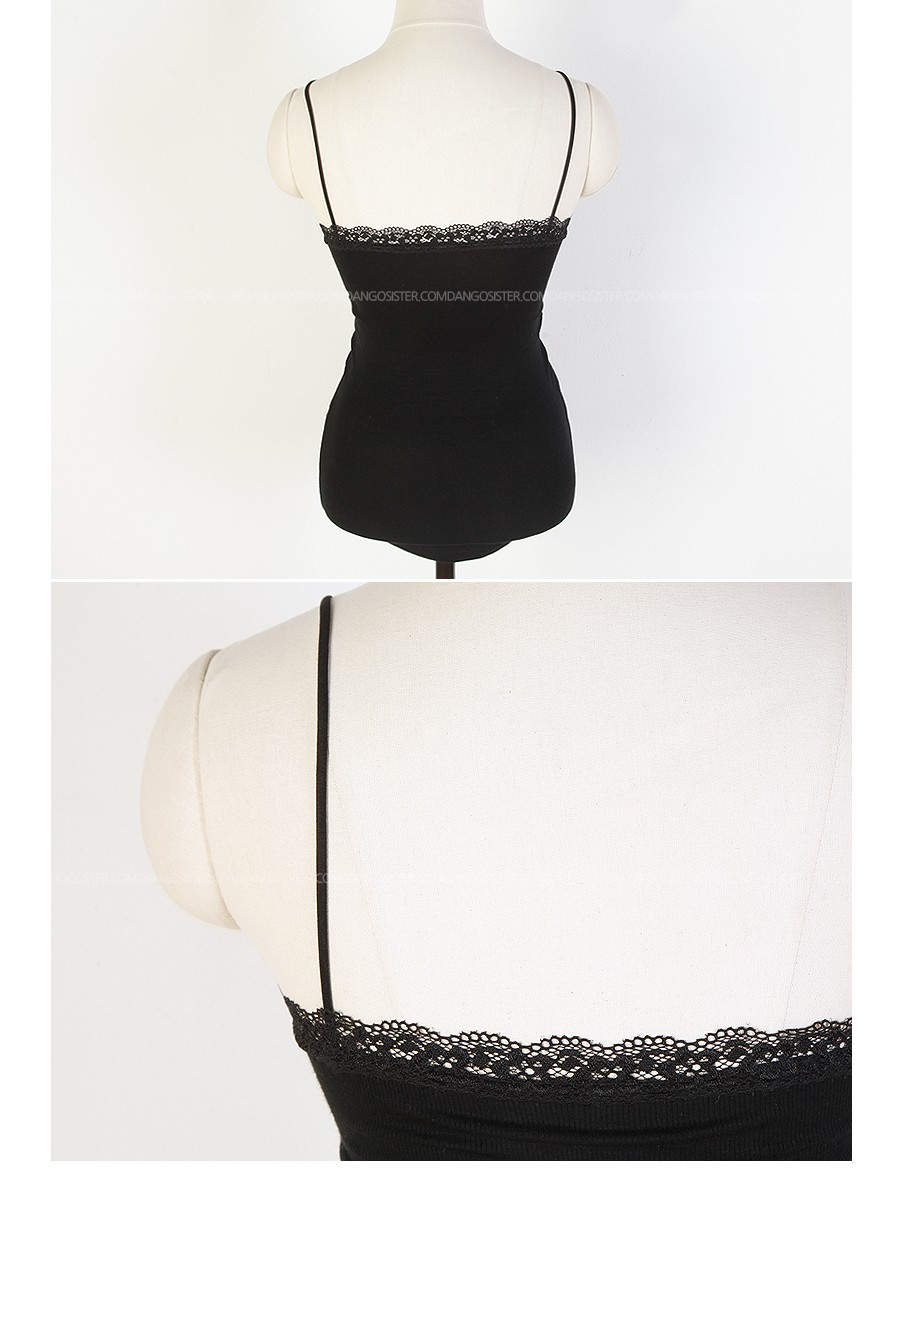 Lecce race string Sleeveless